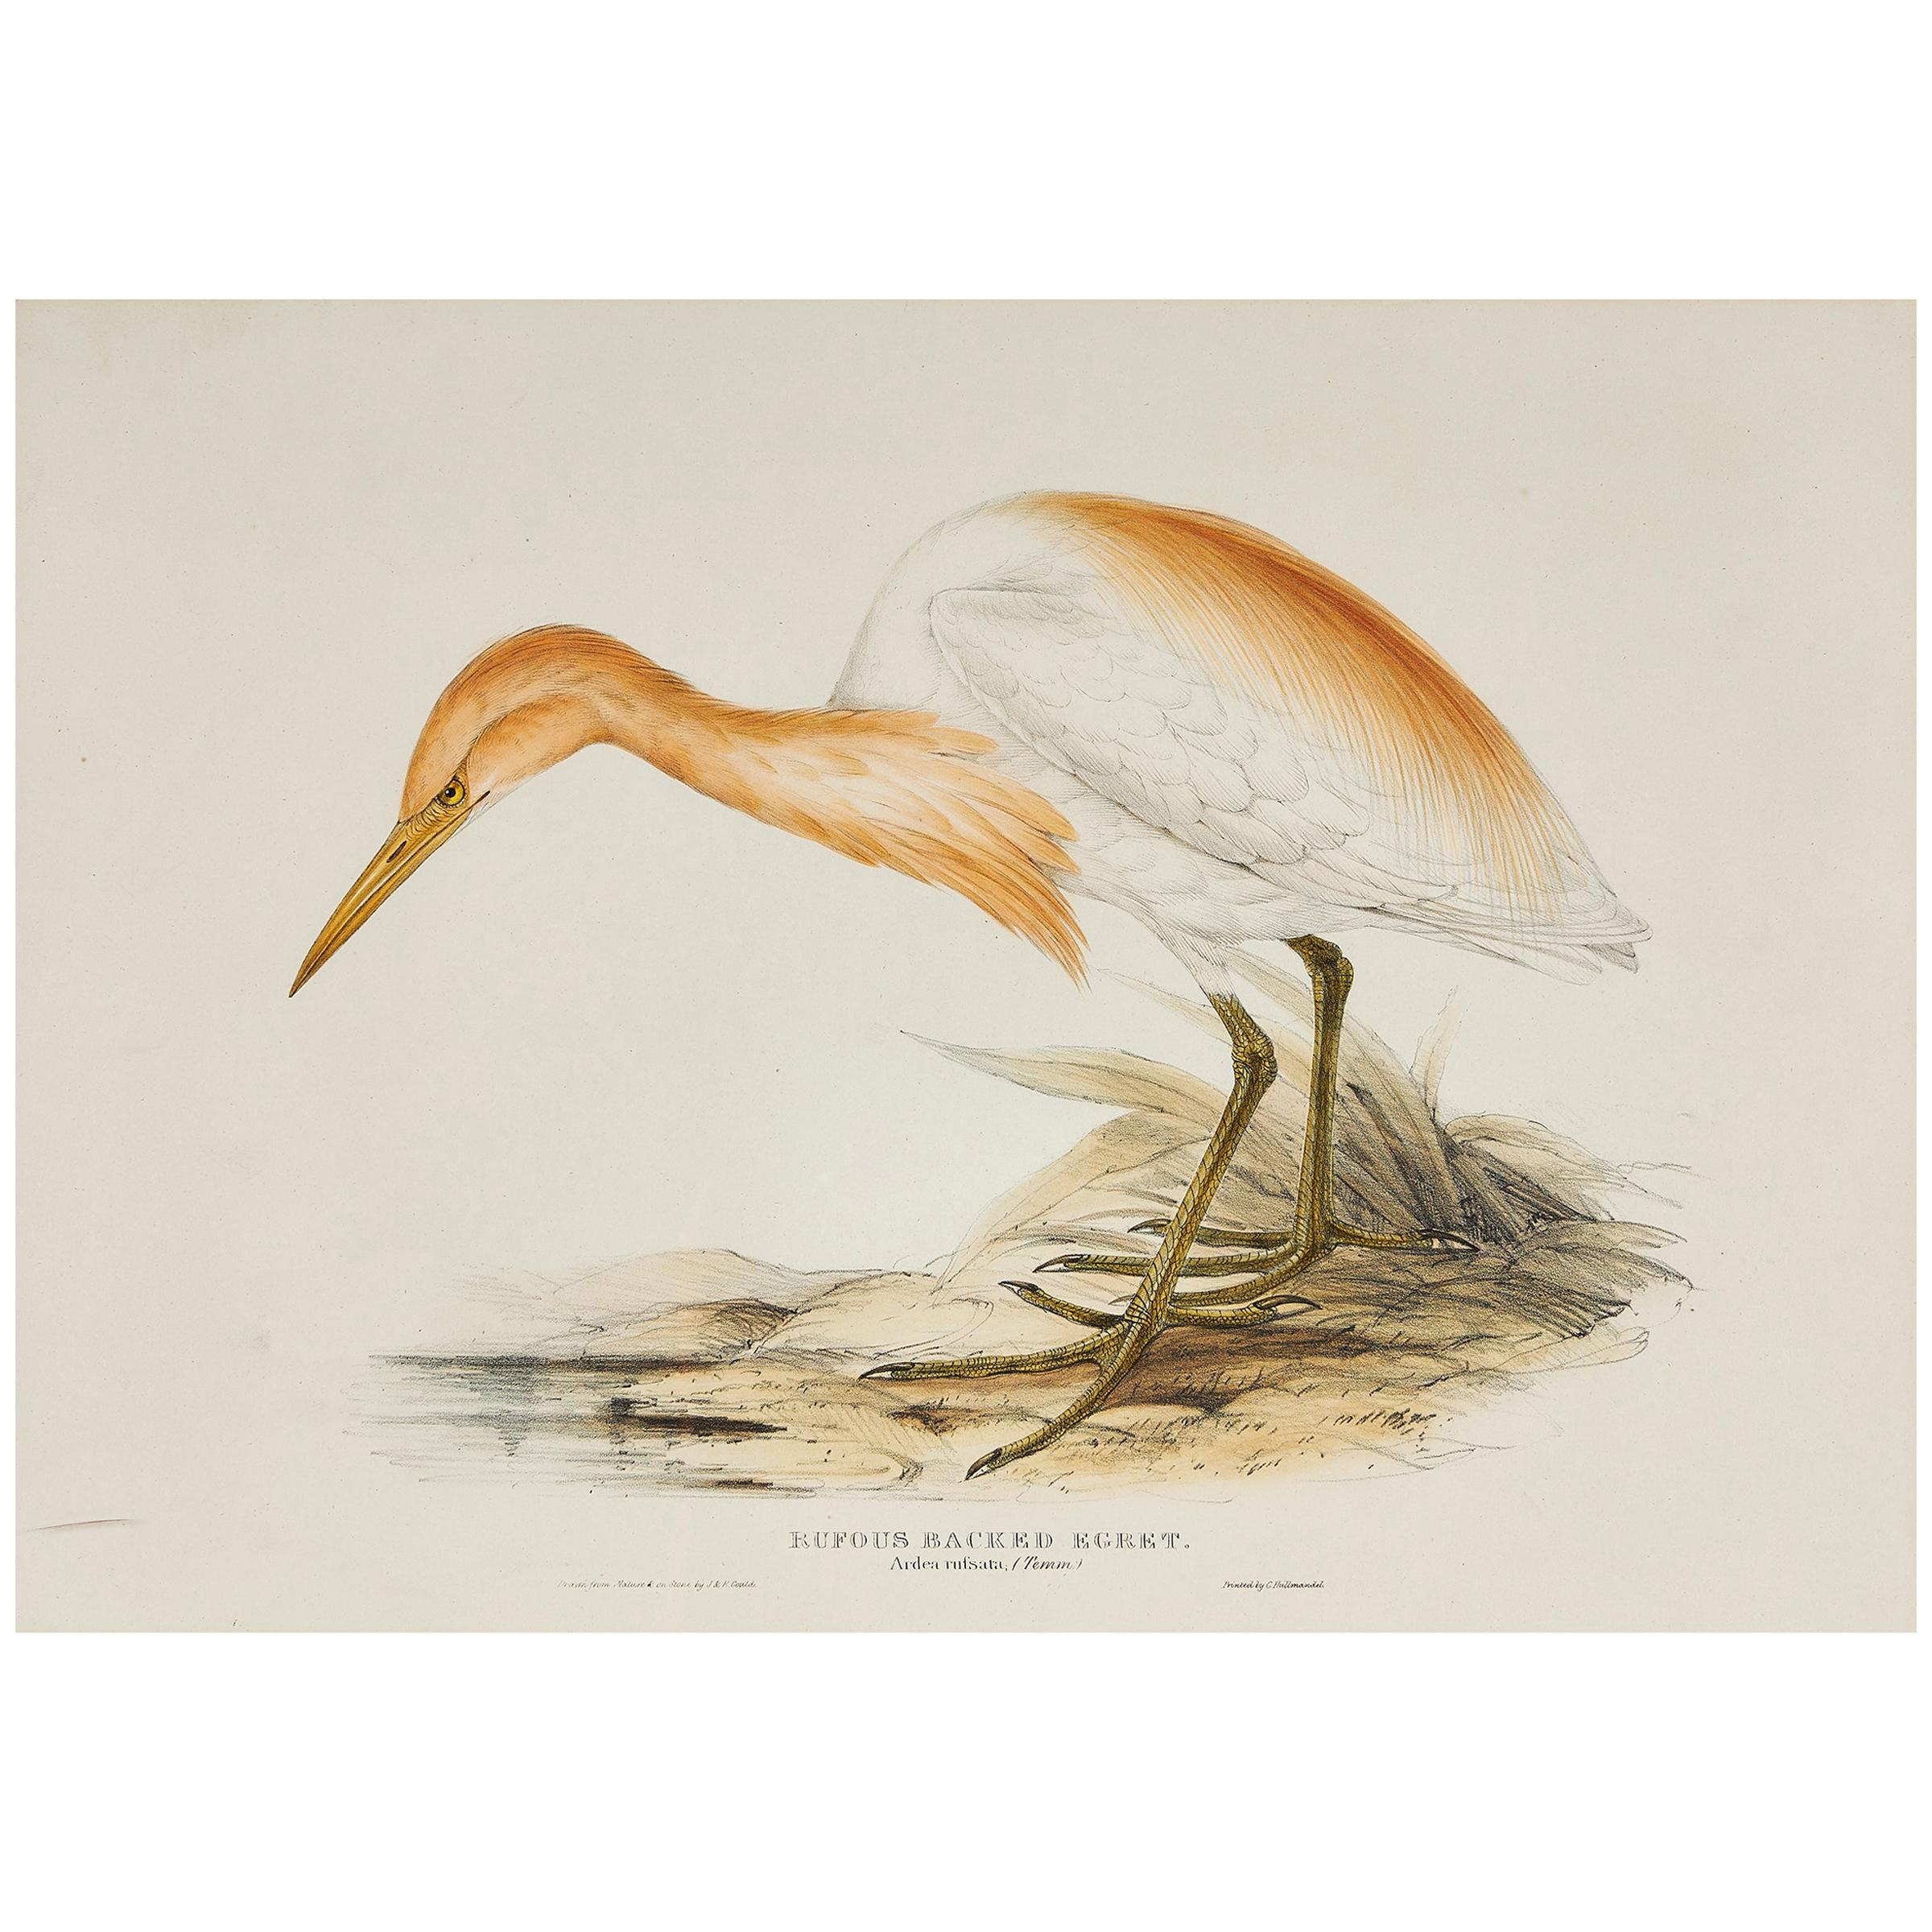 John Gould Lithograph from 'The Birds of Europe'